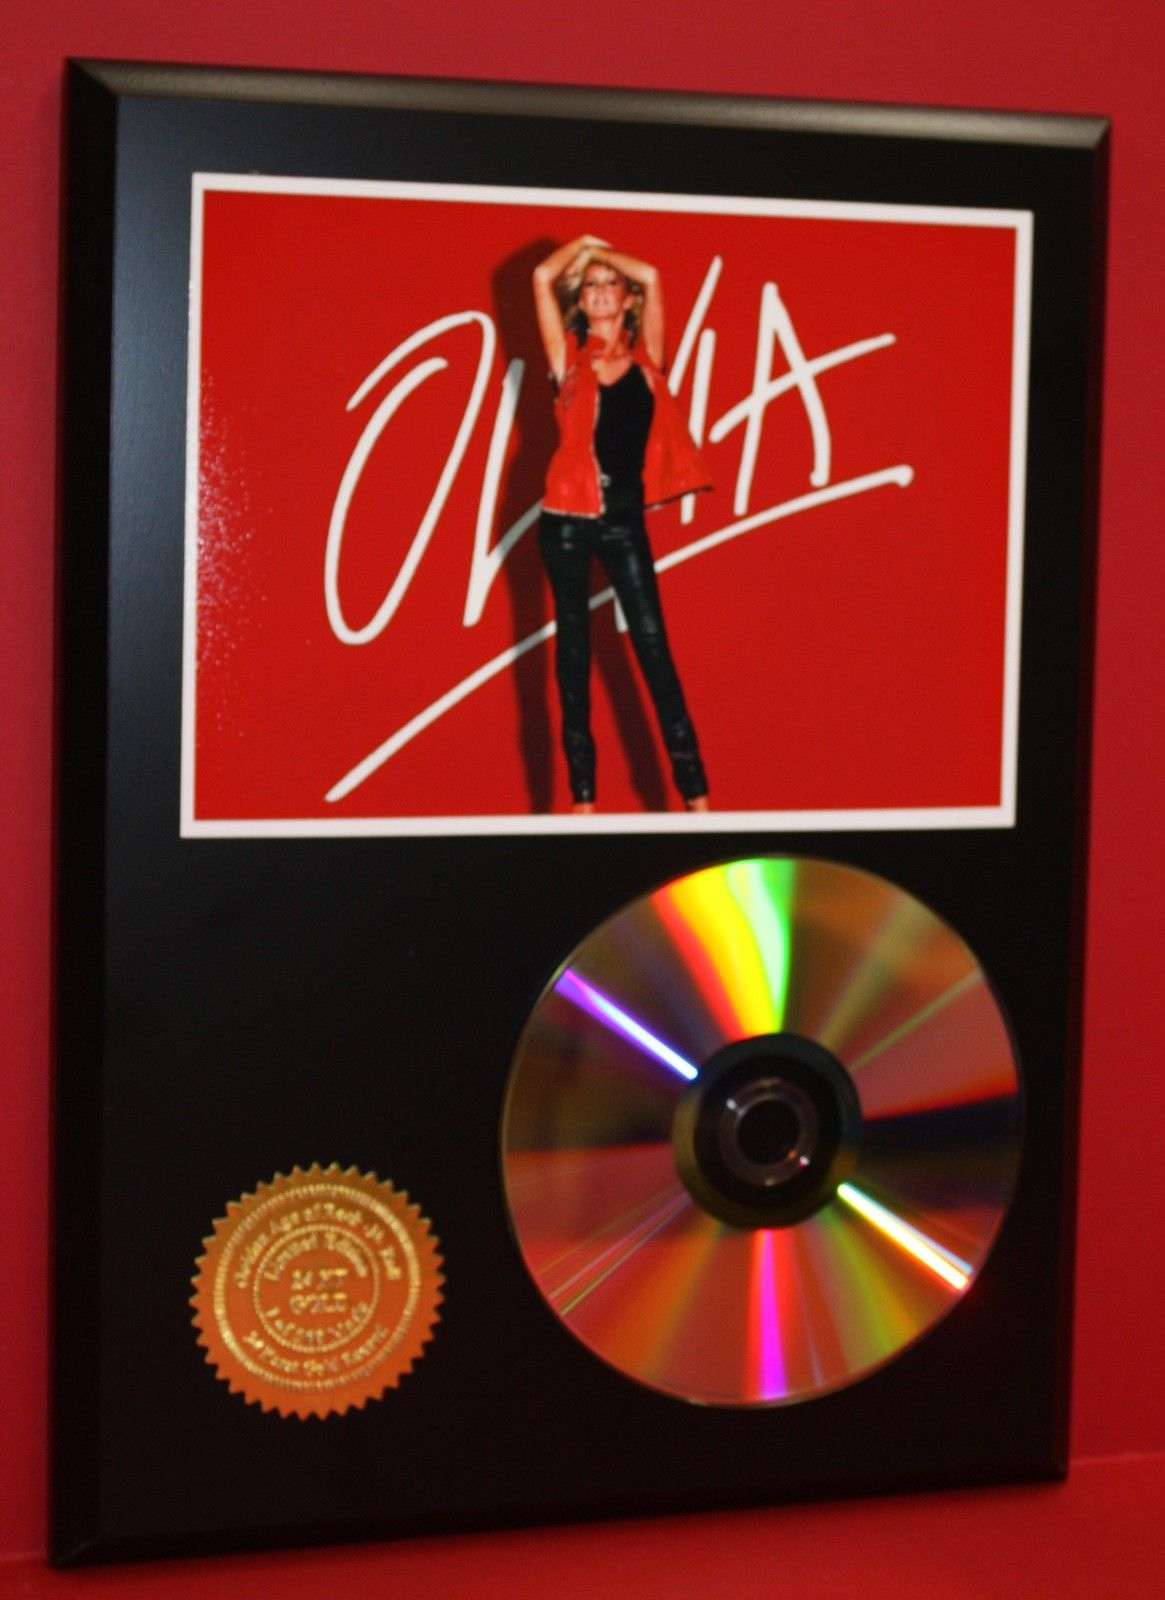 olivia newton john 24kt gold cd disc collectible rare award quality plaque gold record awards. Black Bedroom Furniture Sets. Home Design Ideas